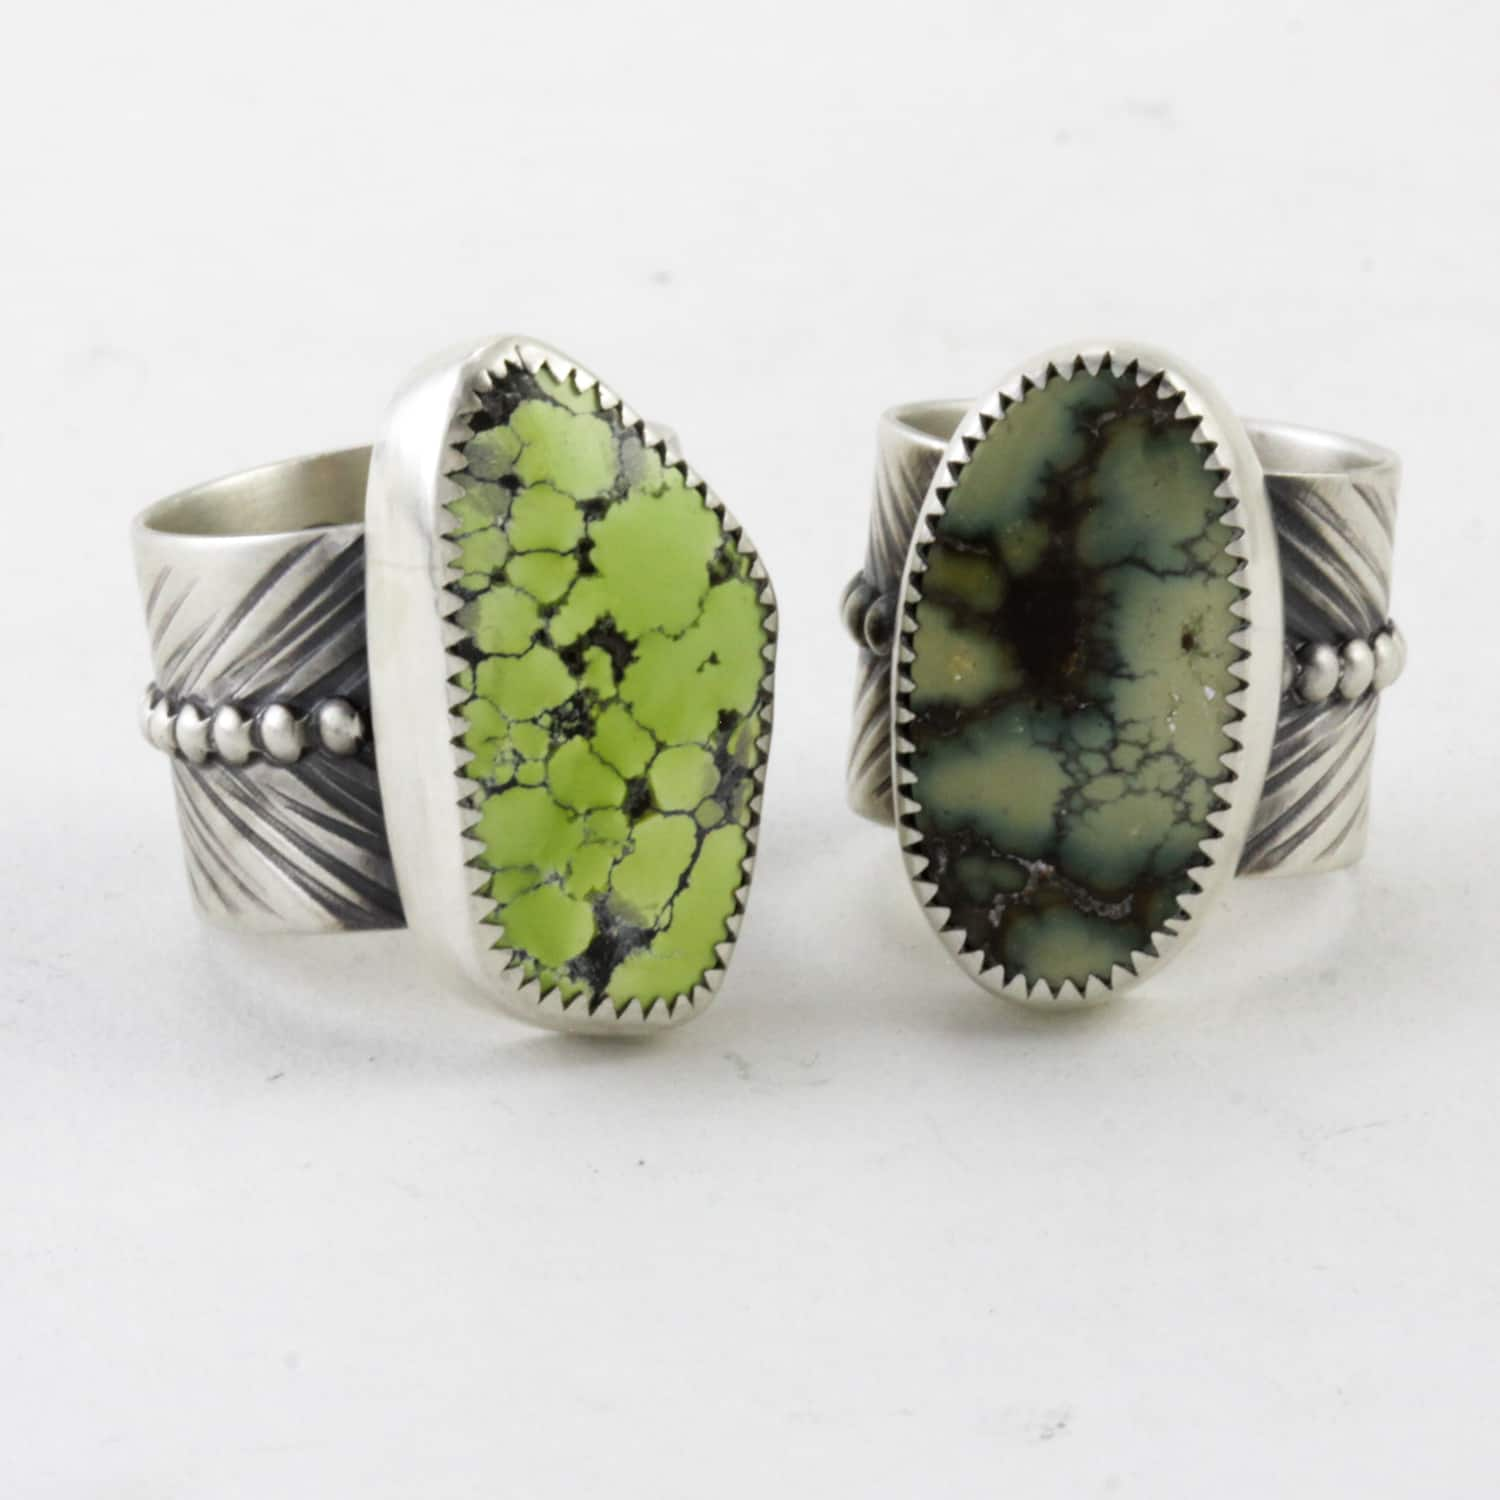 rings products face gemstone details silver product striking ring carved green matt rebelsmarket agate